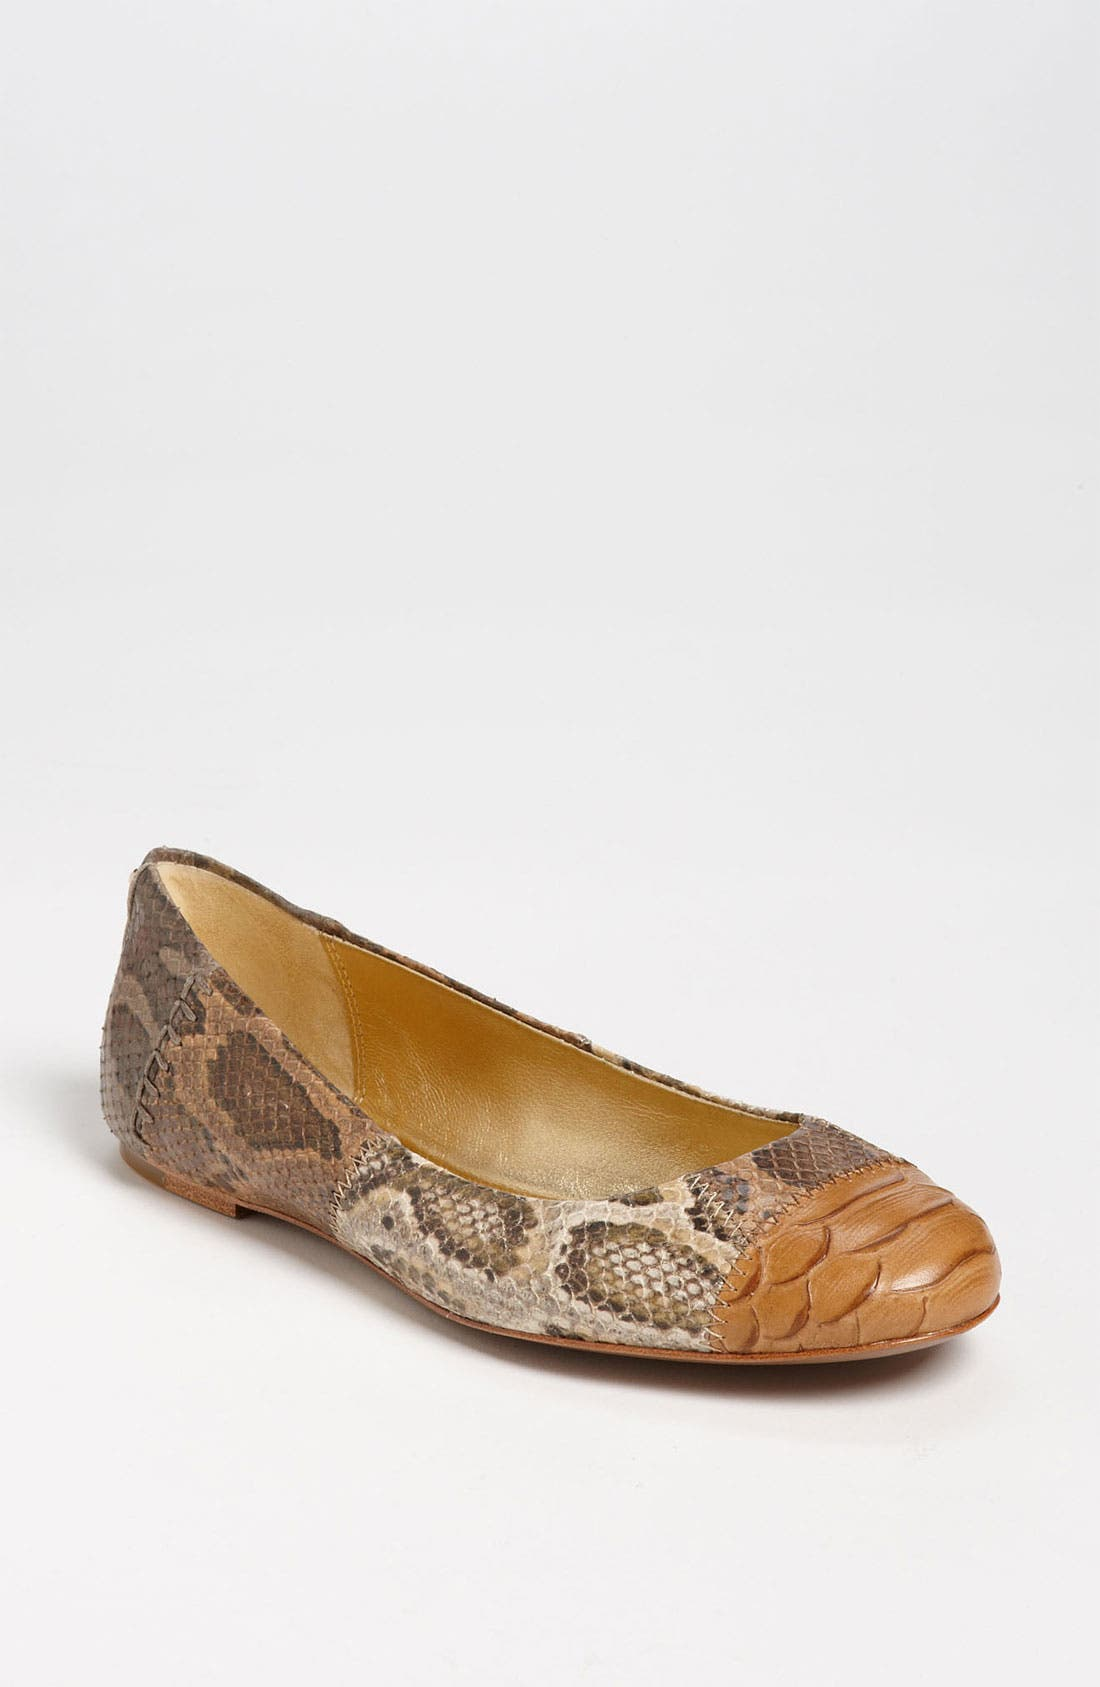 Alternate Image 1 Selected - COACH 'Annabelle' Flat